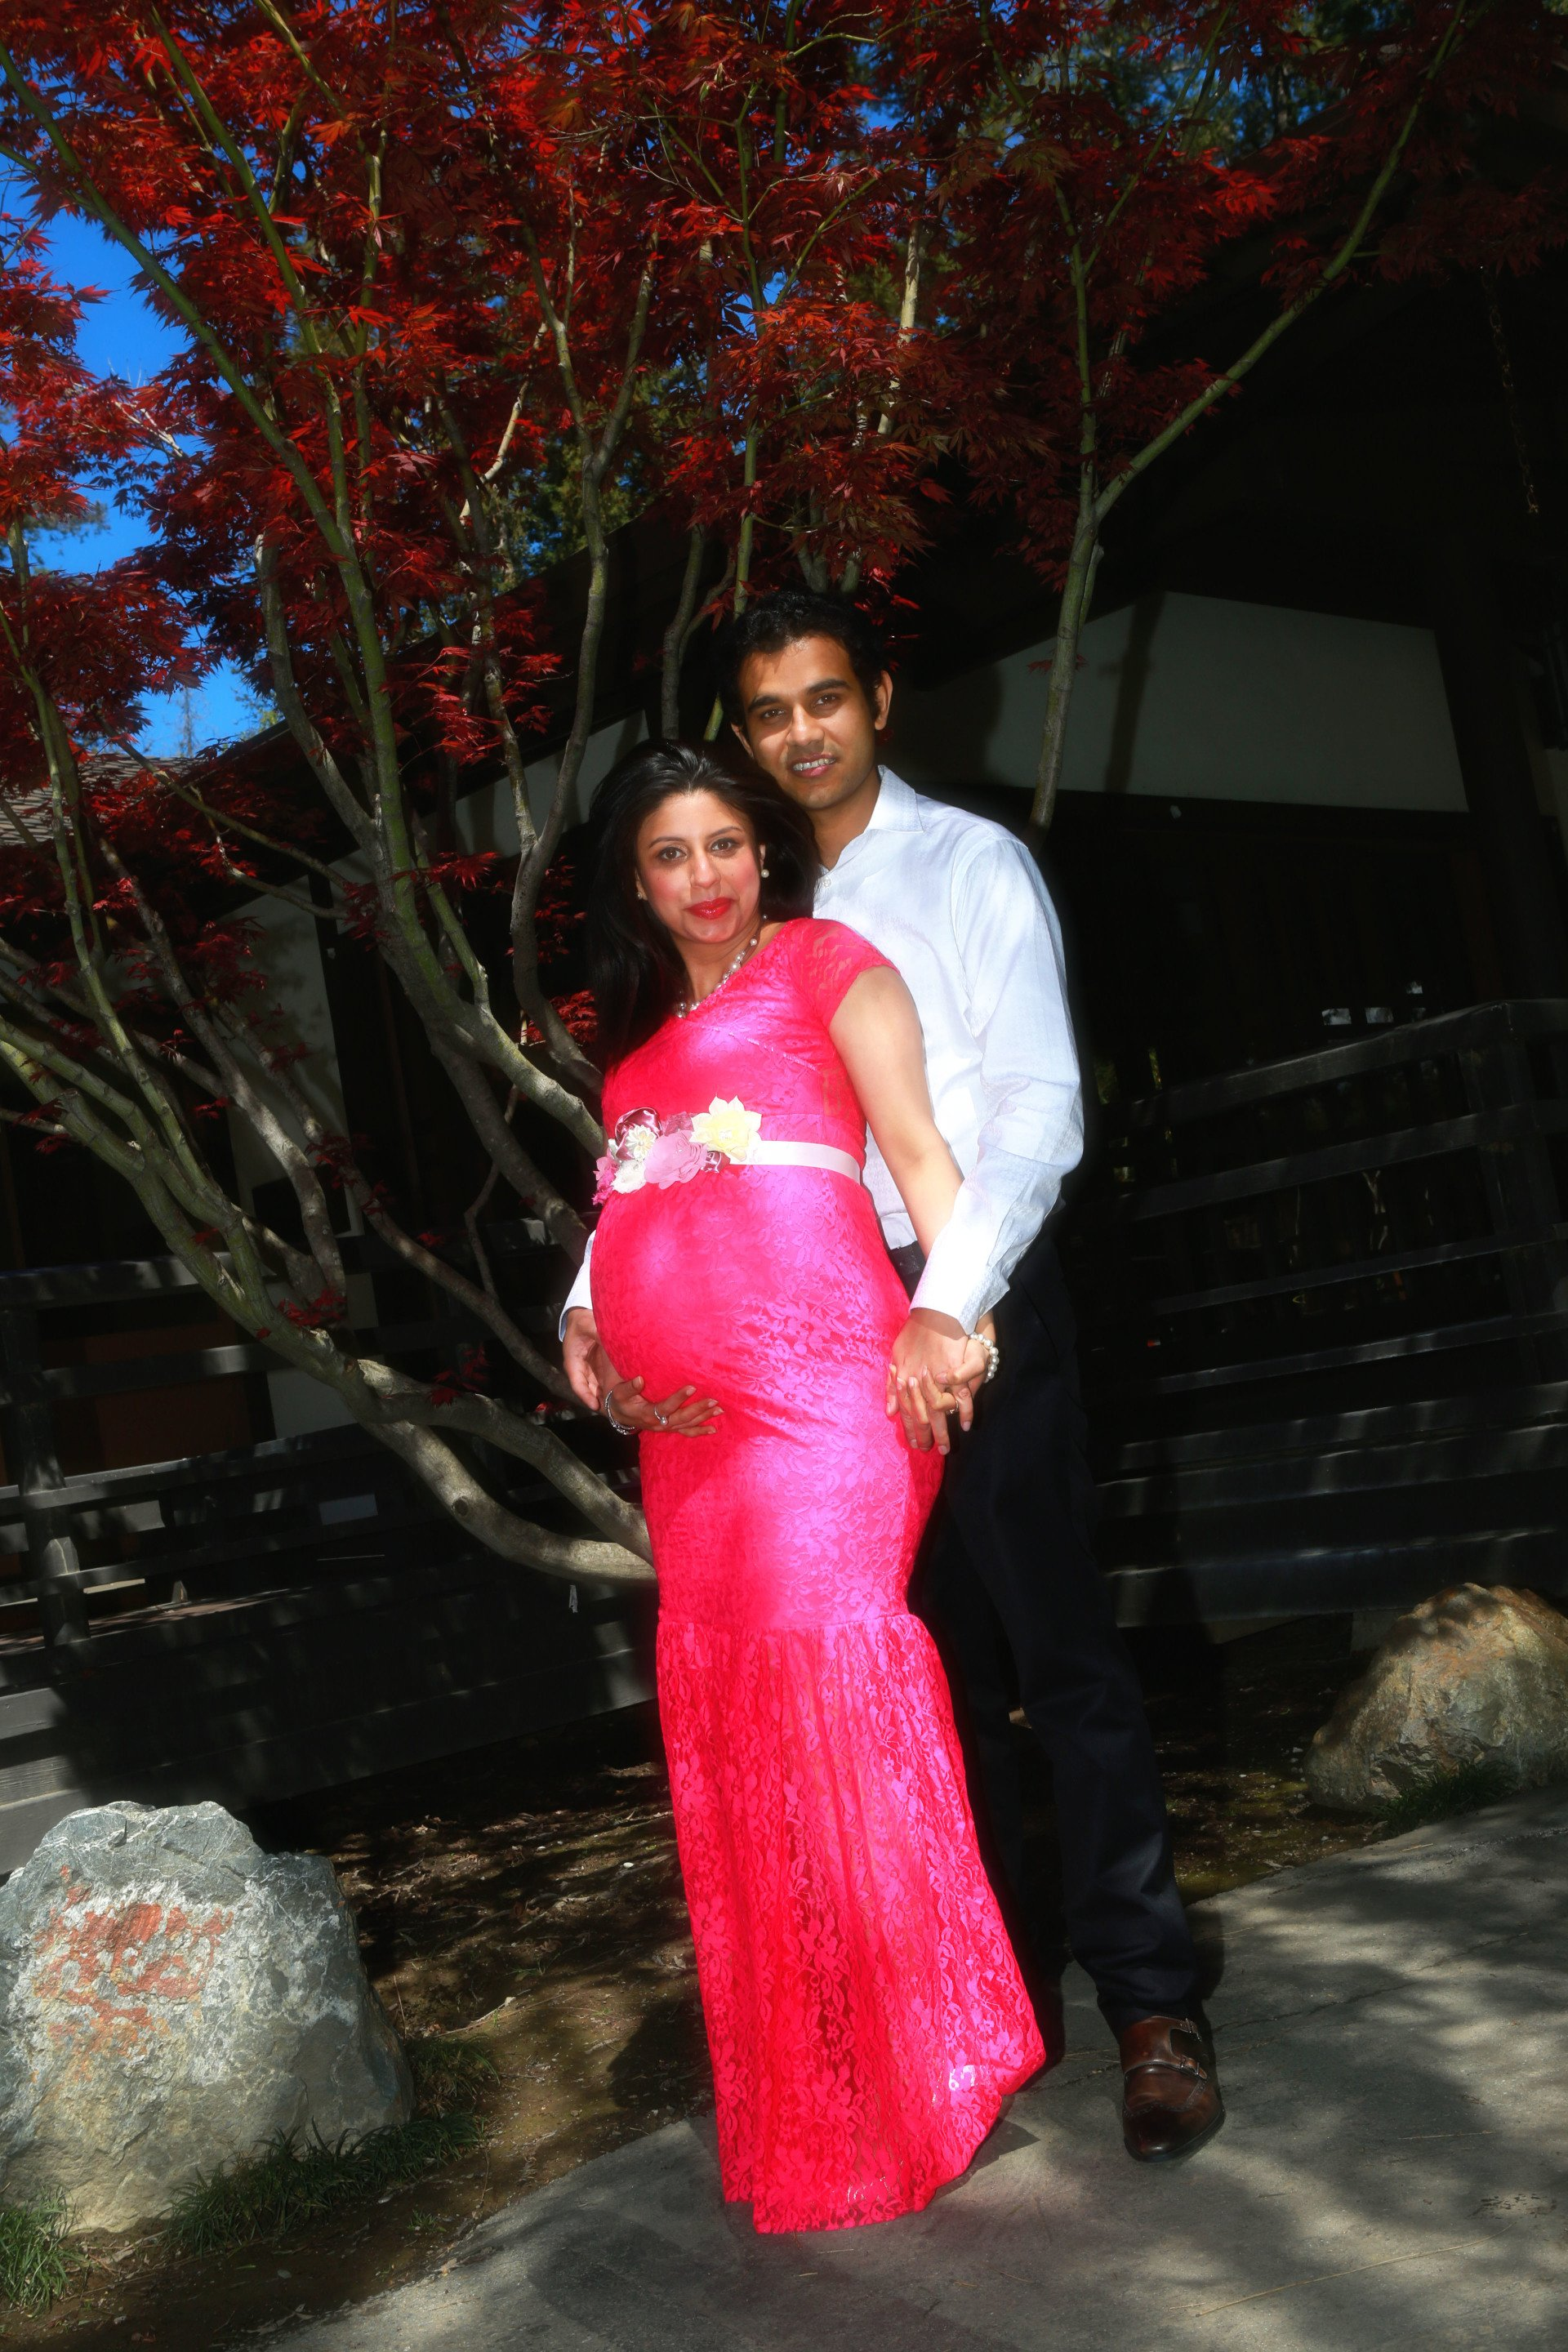 sf bay area professional maternity photography